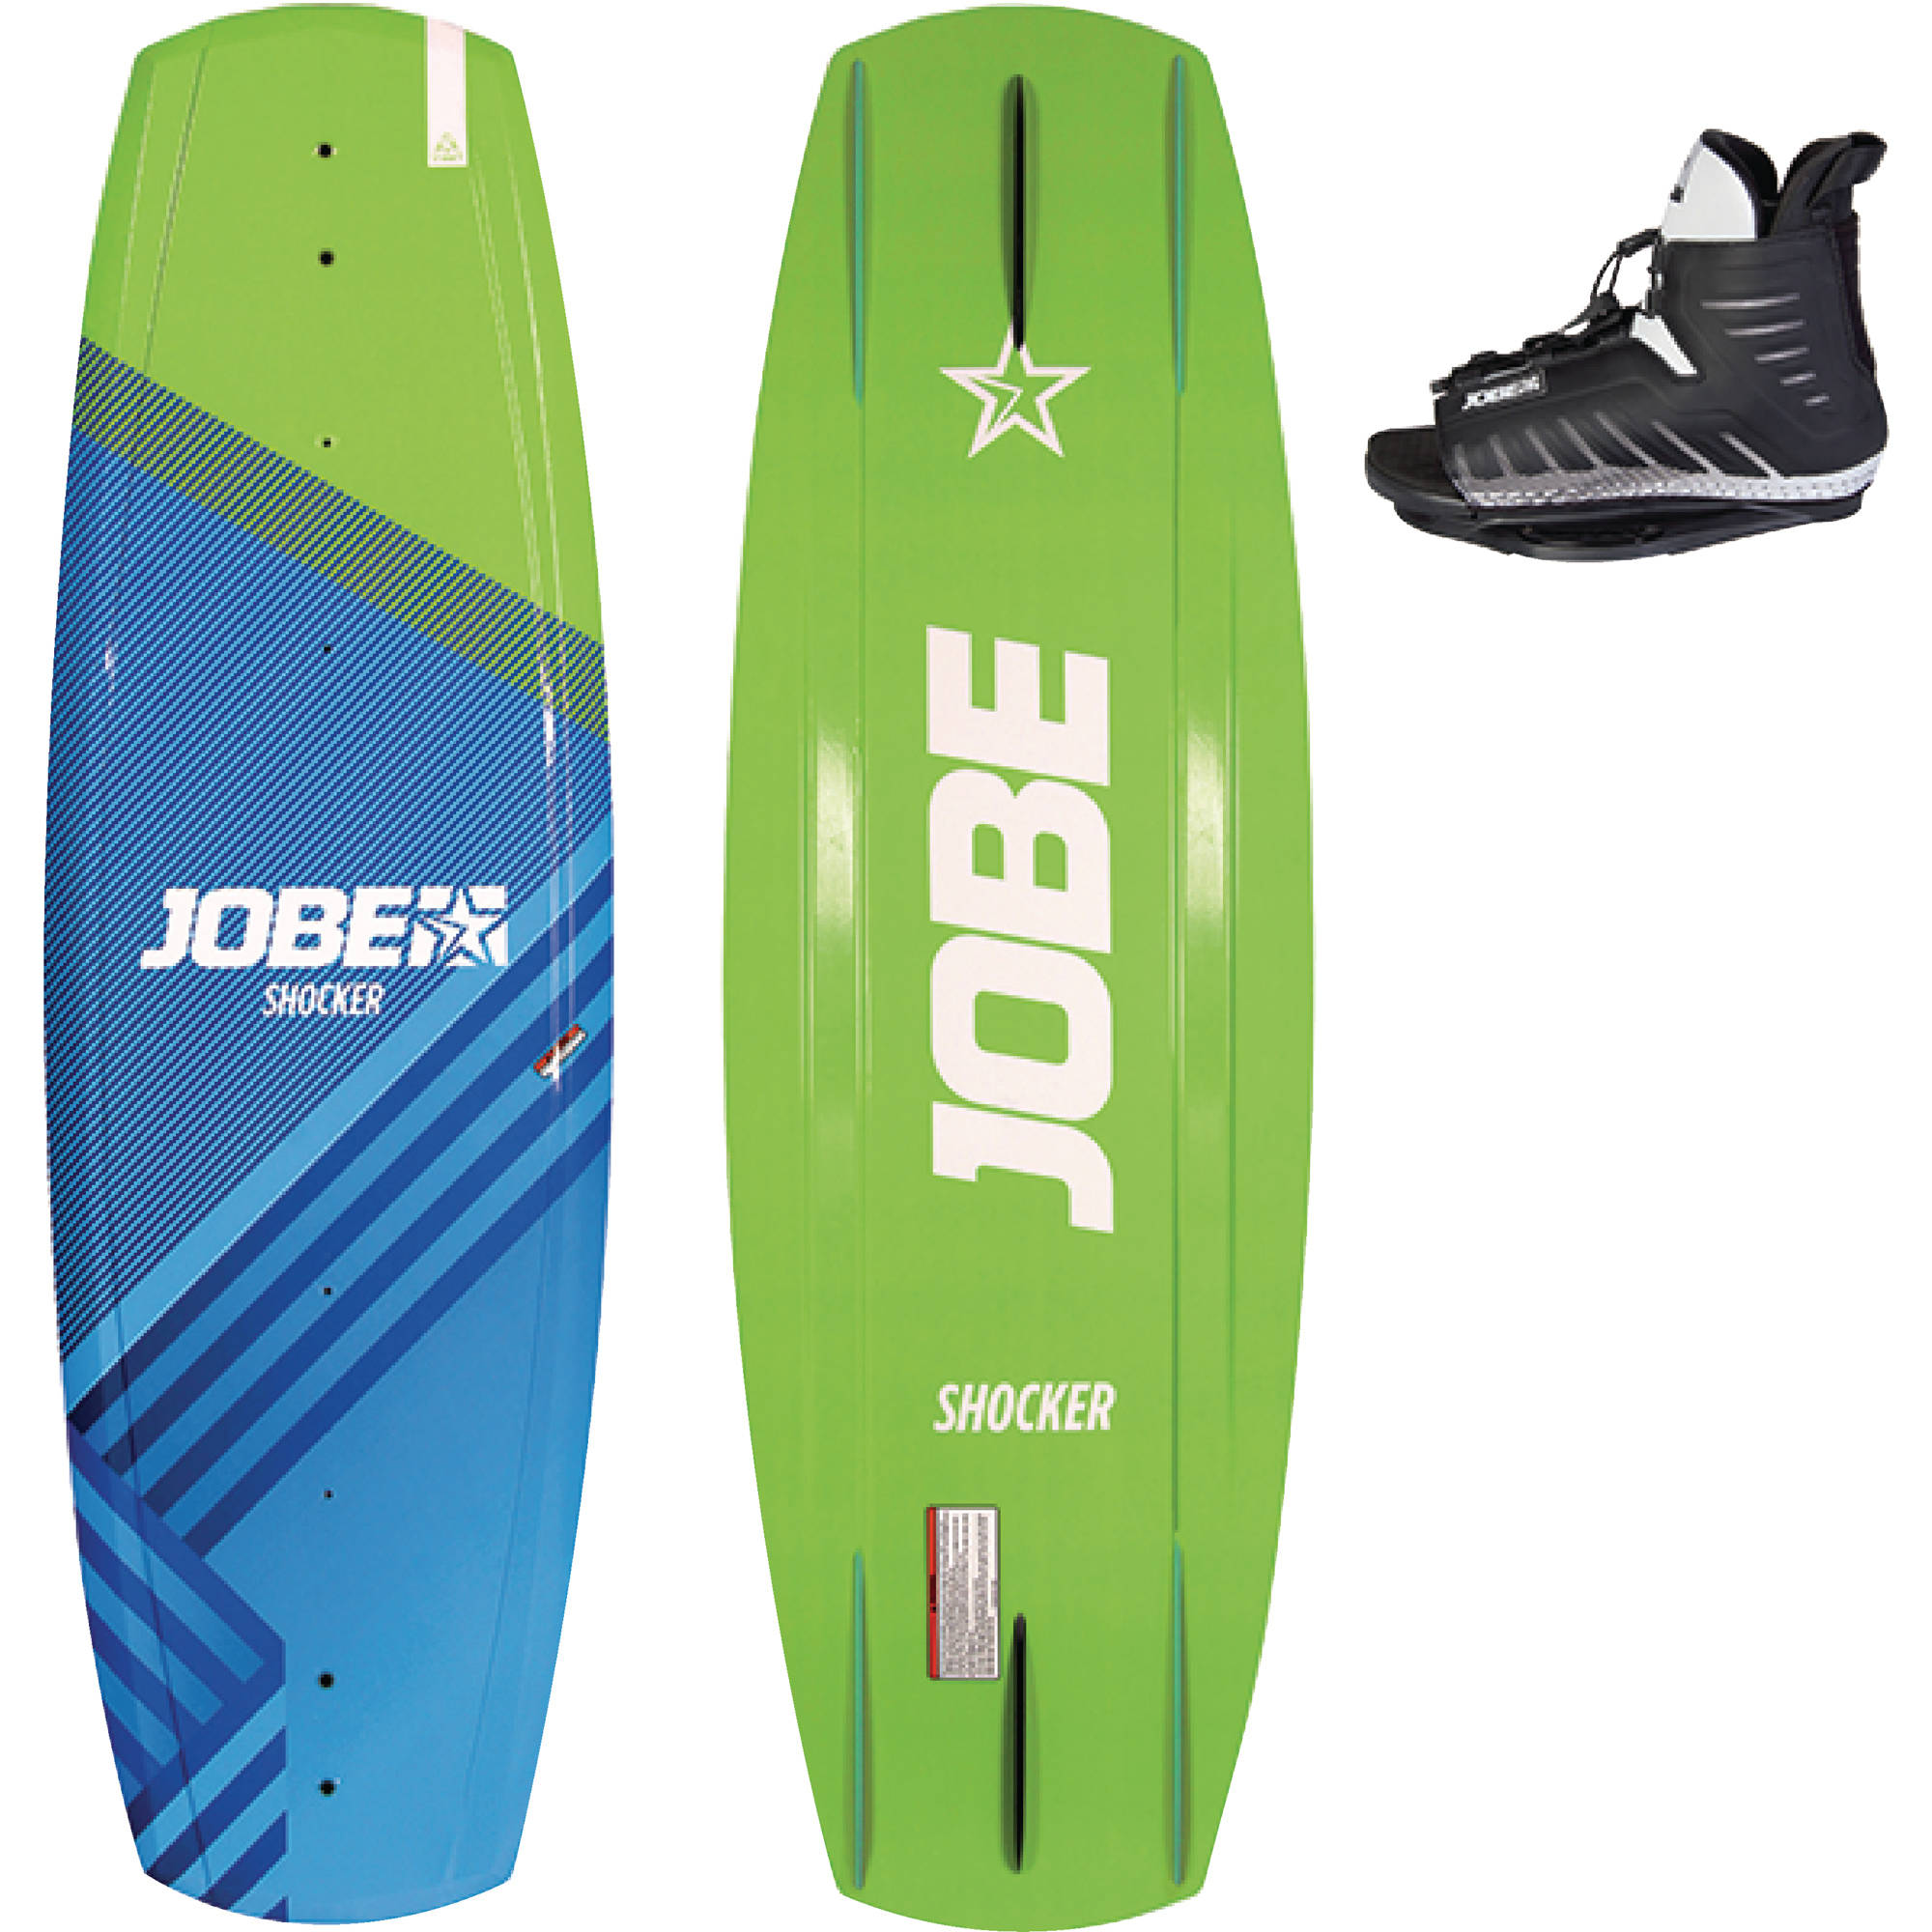 Jobe Shocker 138 Wakeboard 5 to 8 Shoe Size Set by Jobe Sport International